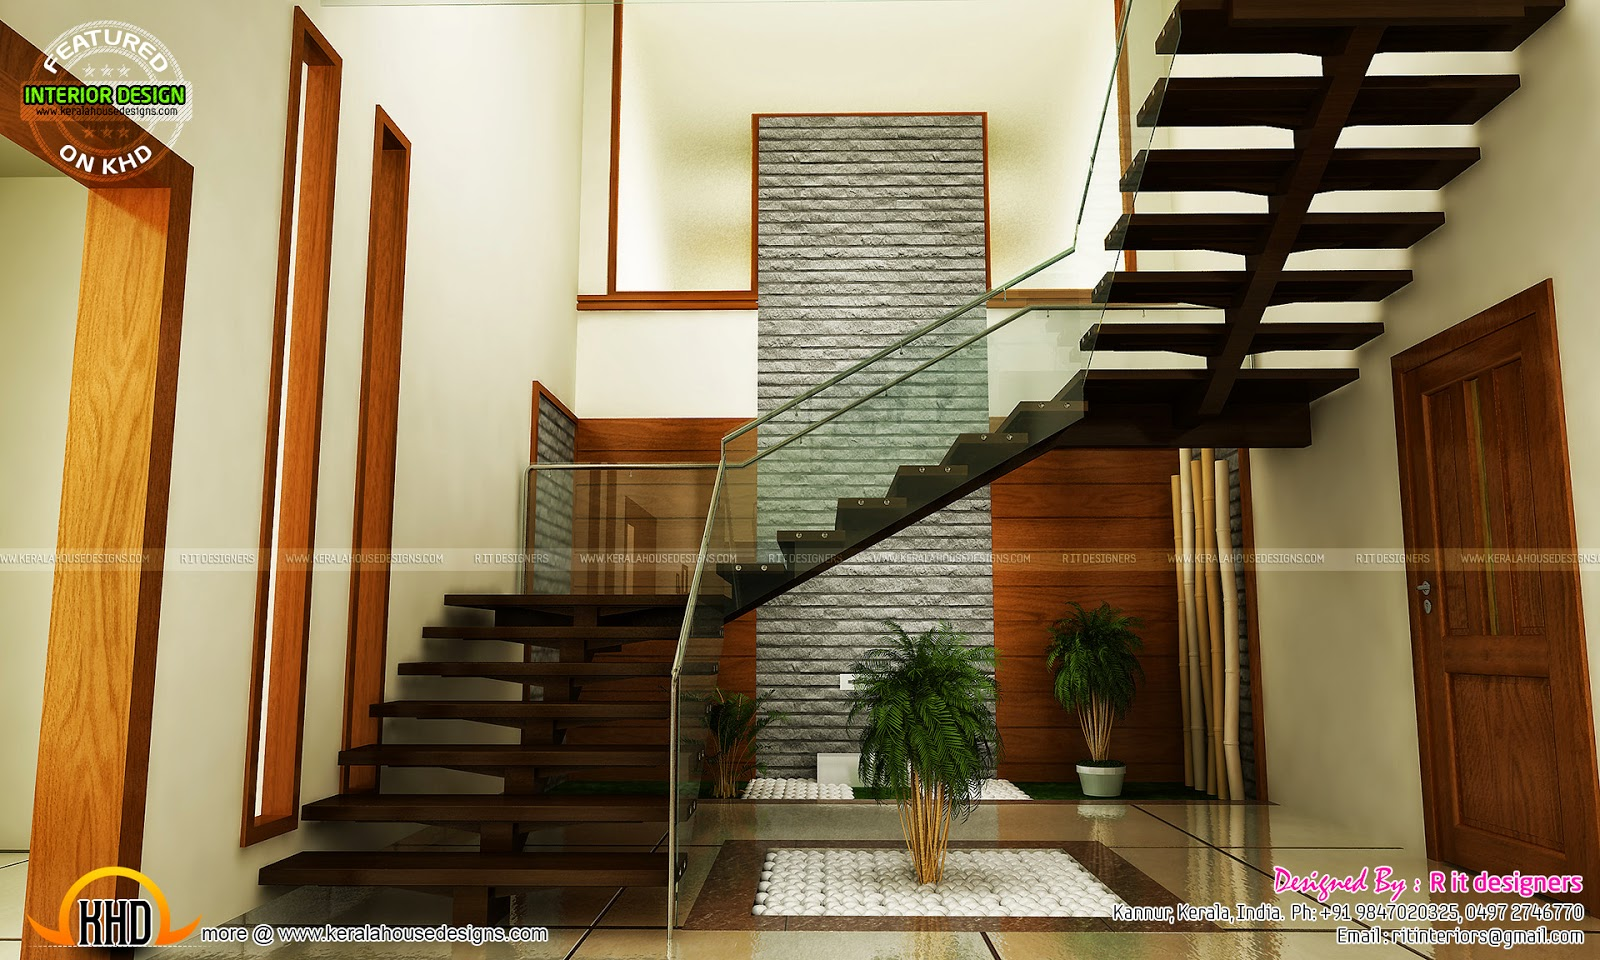 Staircase bedroom dining interiors kerala home design for Kerala house interior arch design